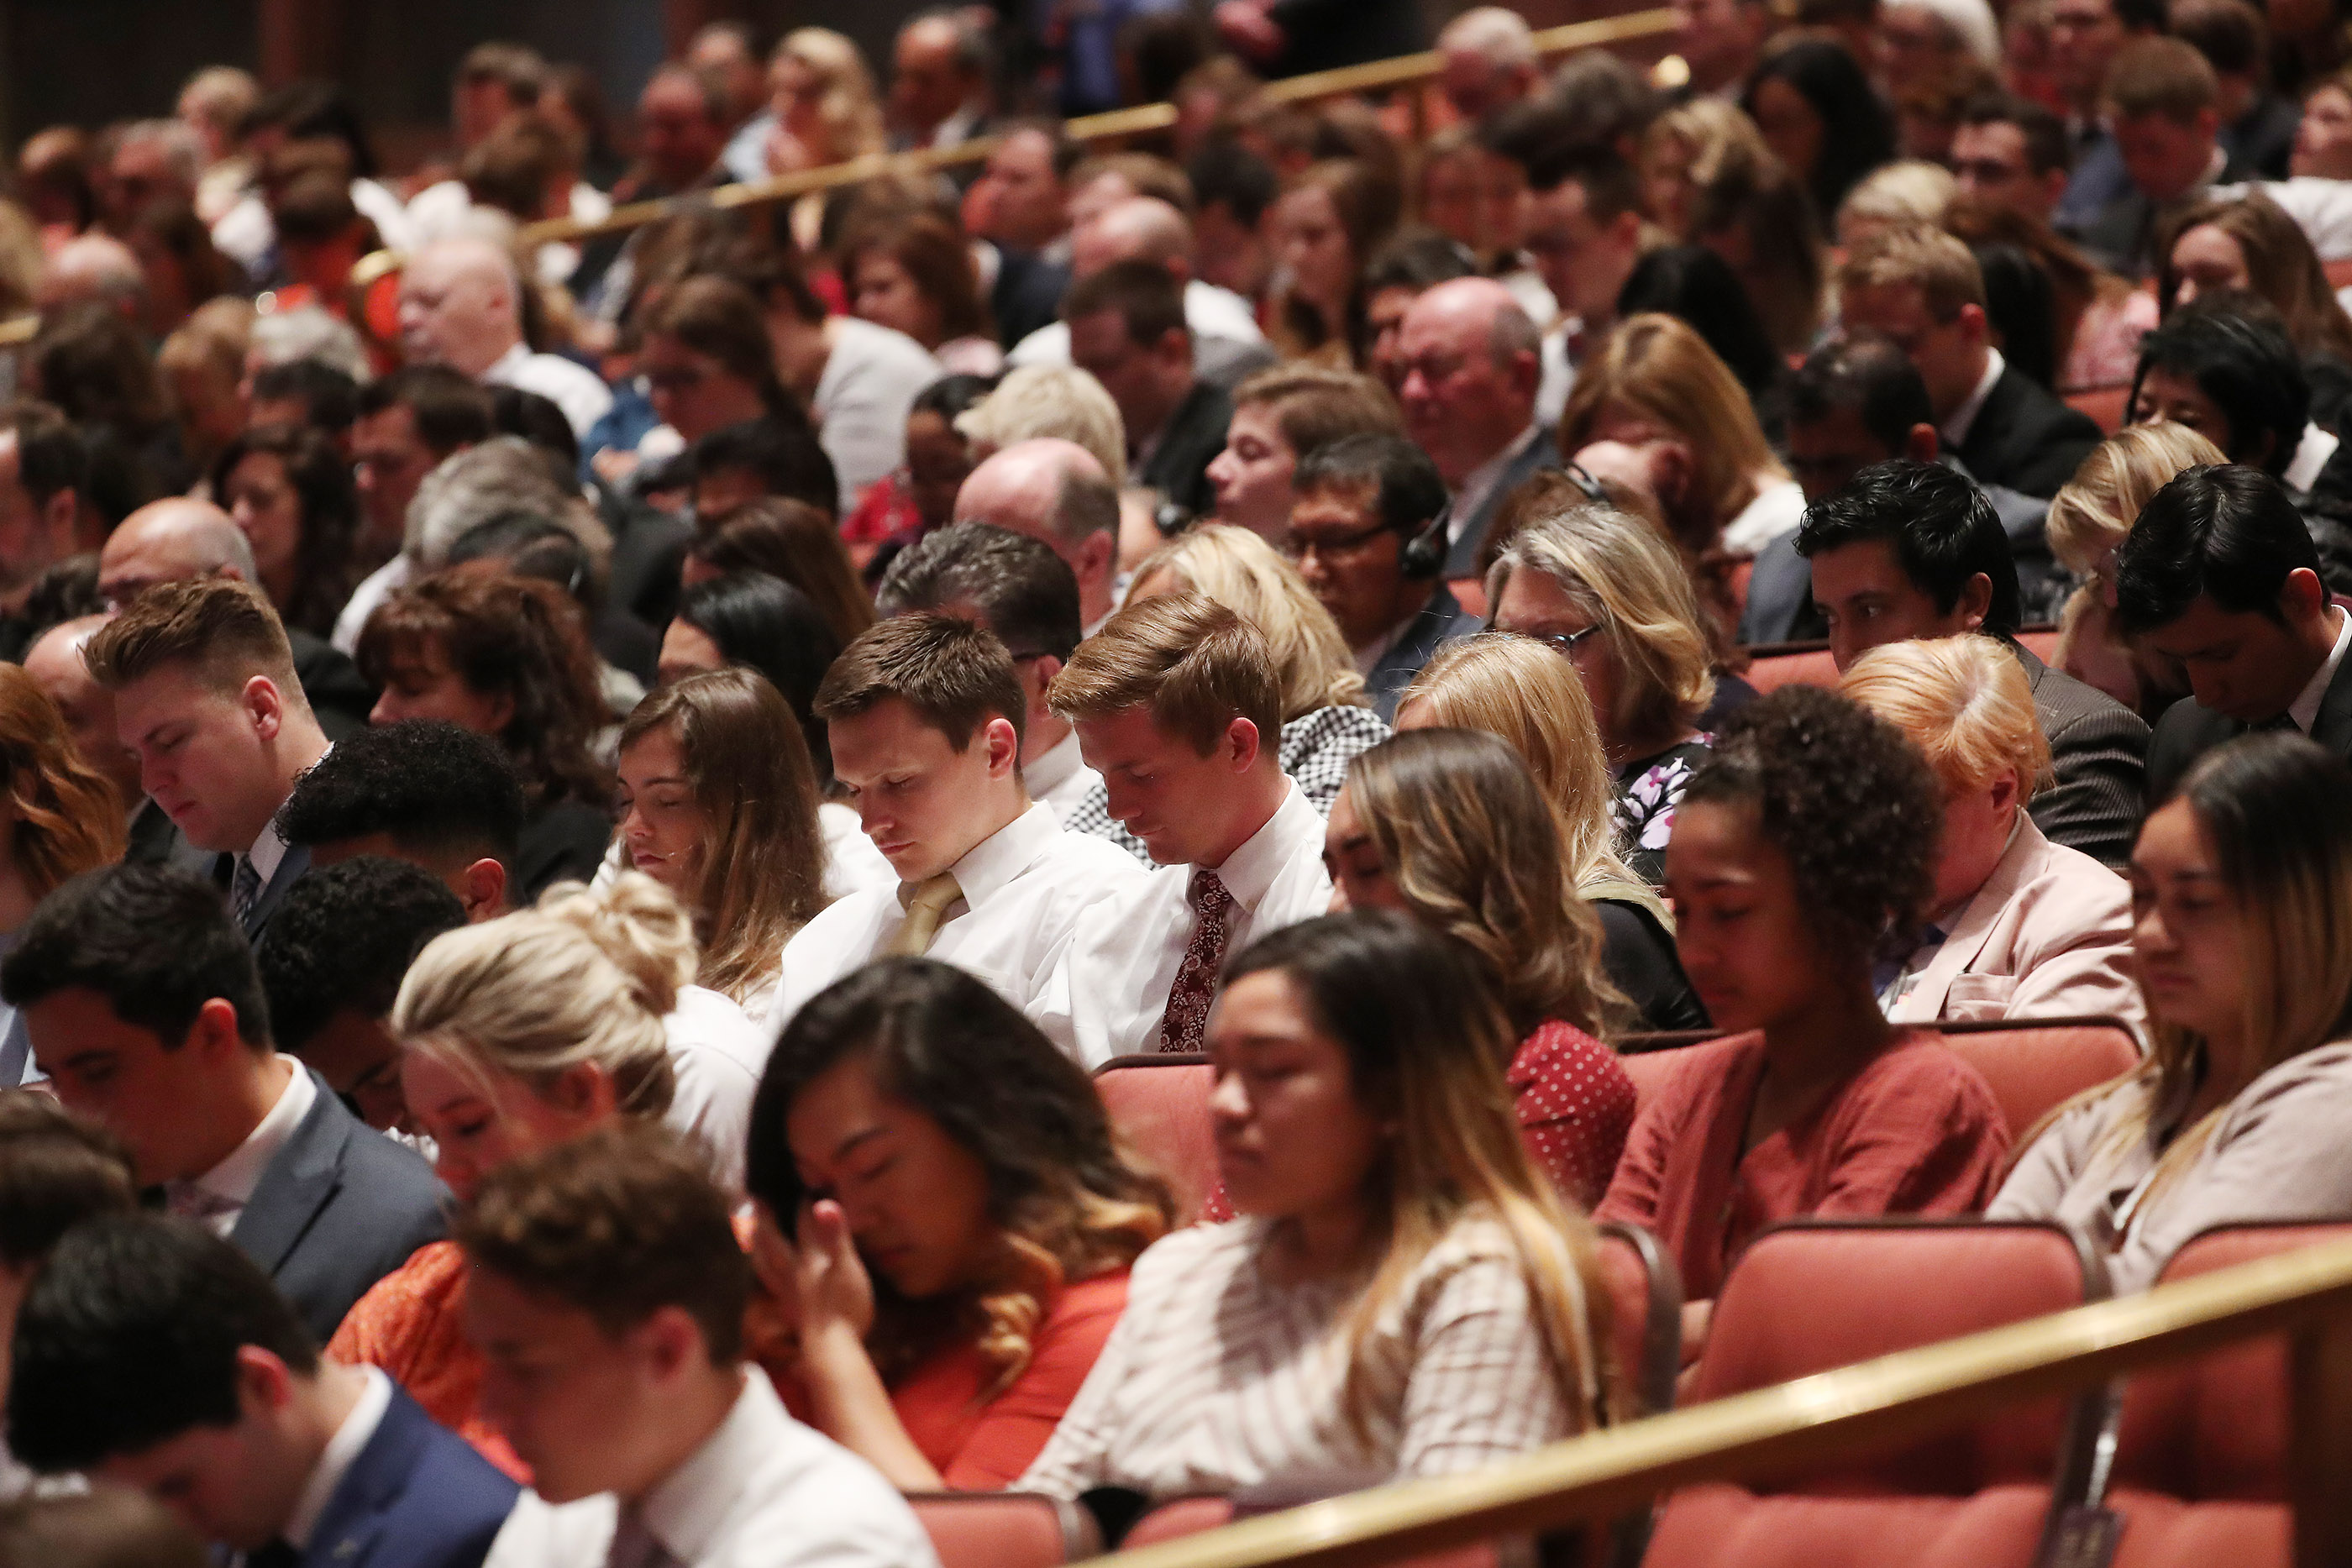 Conferencegoers listen to the opening prayer during the 189th Annual General Conference of The Church of Jesus Christ of Latter-day Saints in Salt Lake City on Saturday, April 6, 2019.